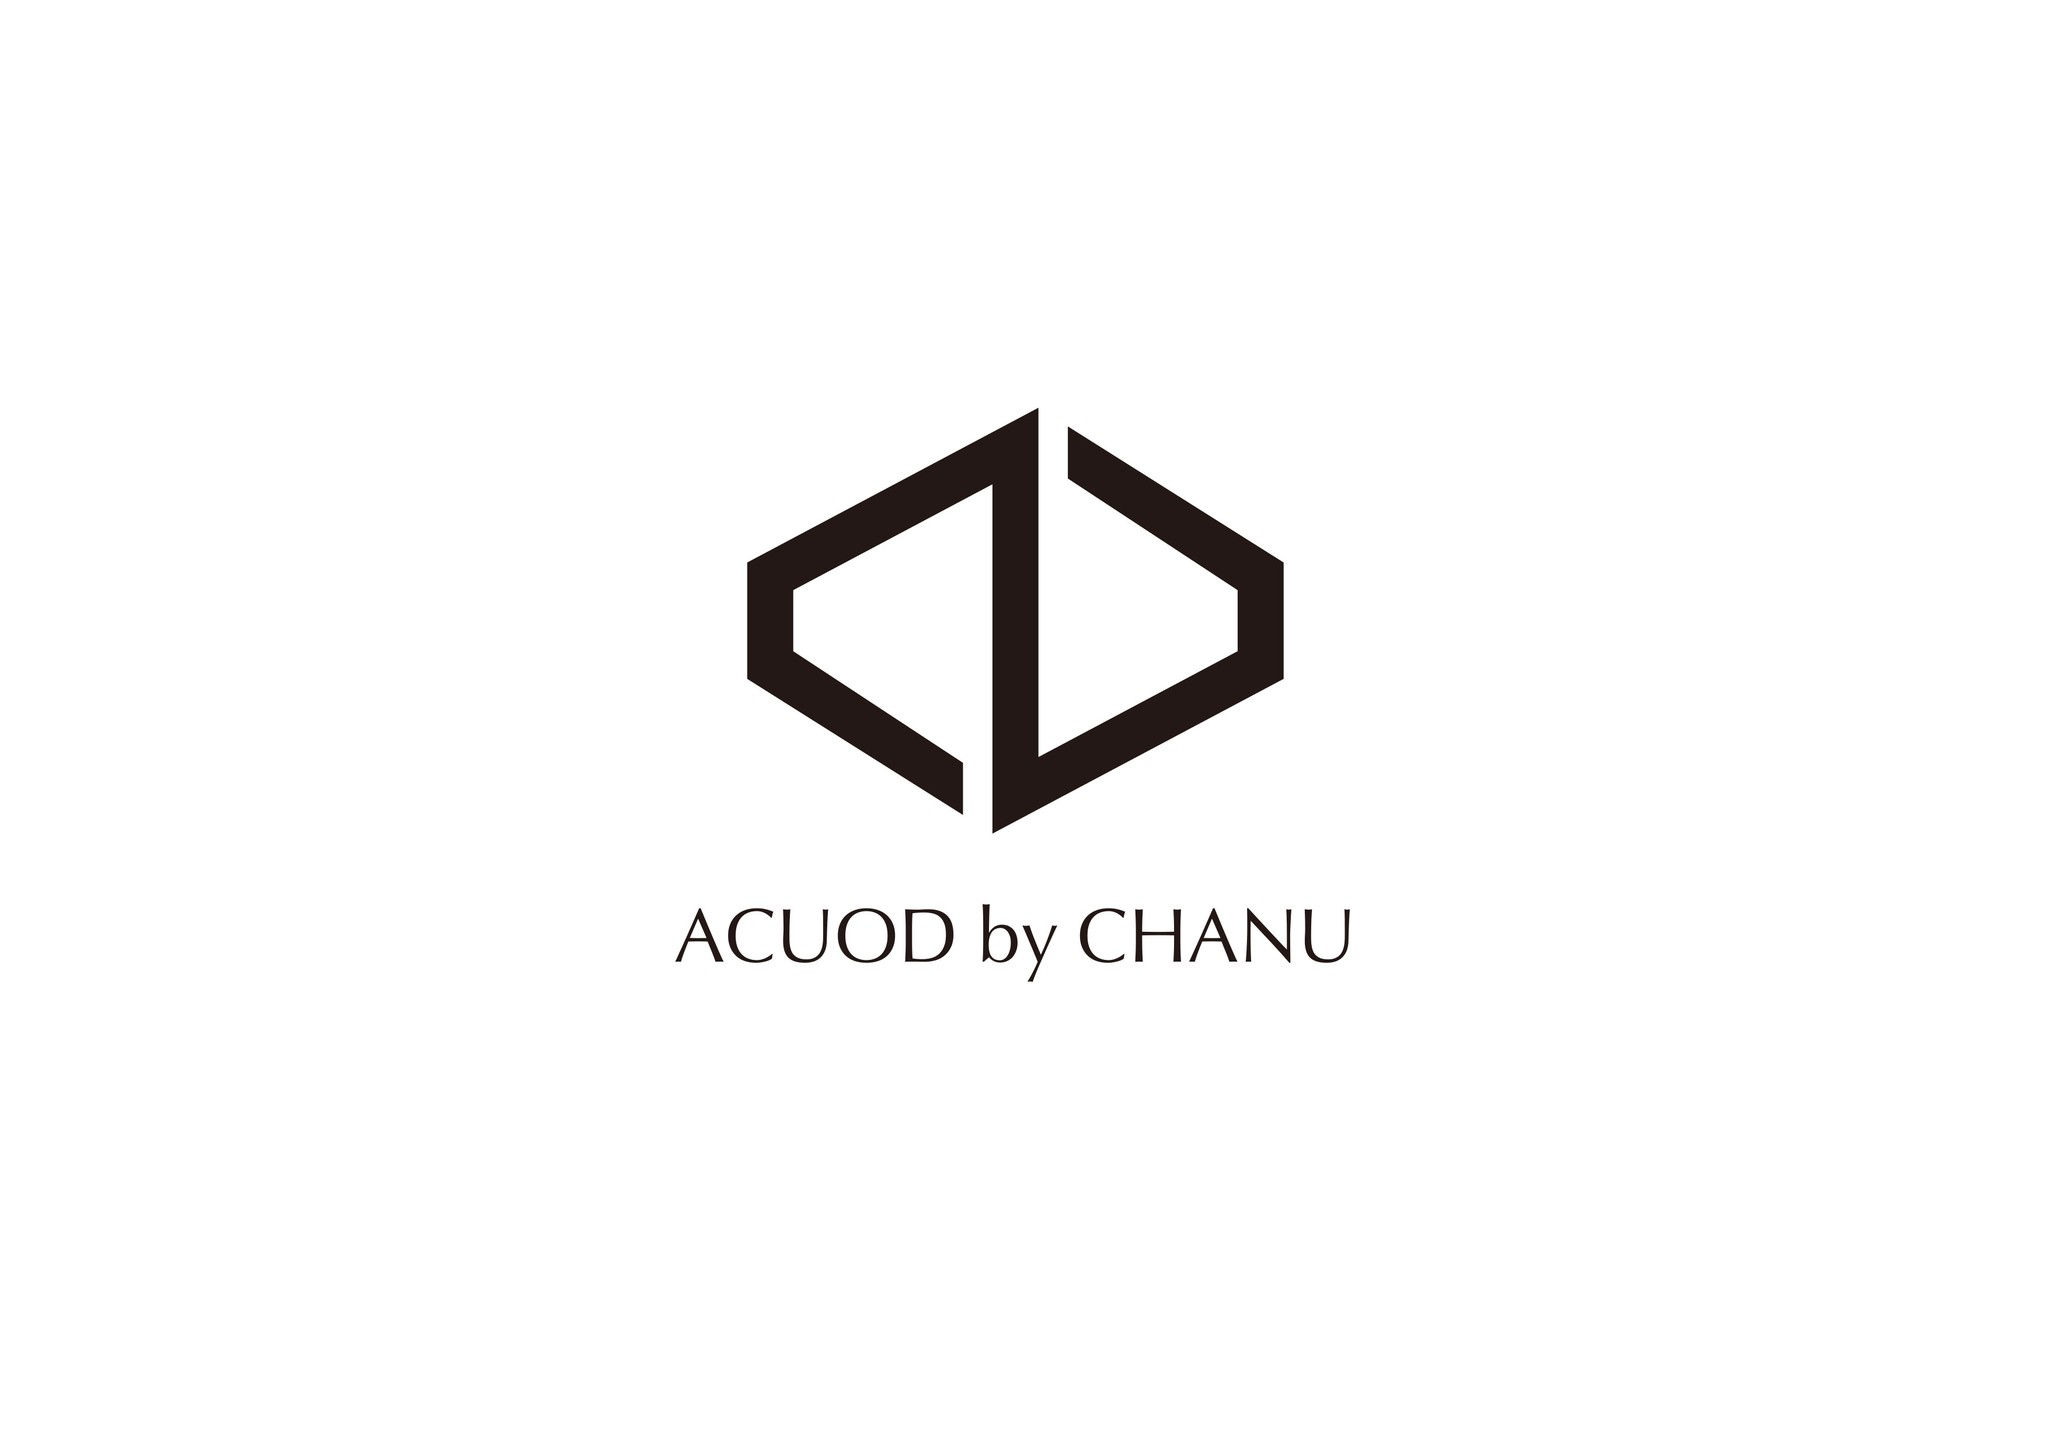 ACUOD by CHANU